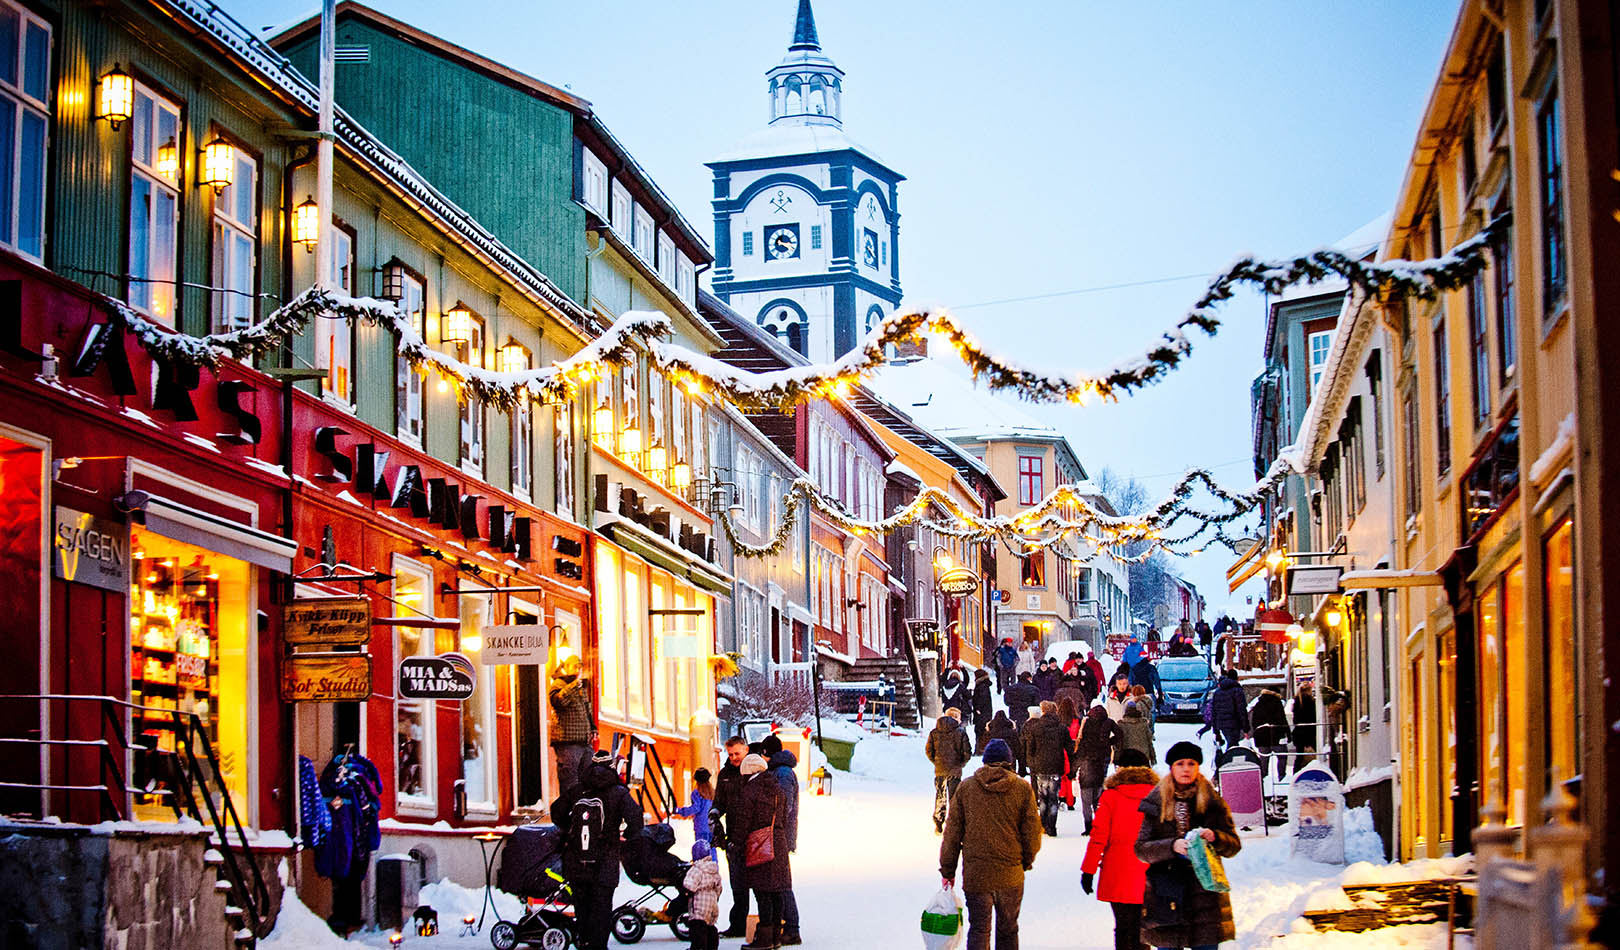 Christmas decorated street in Røros with busy shoppers.